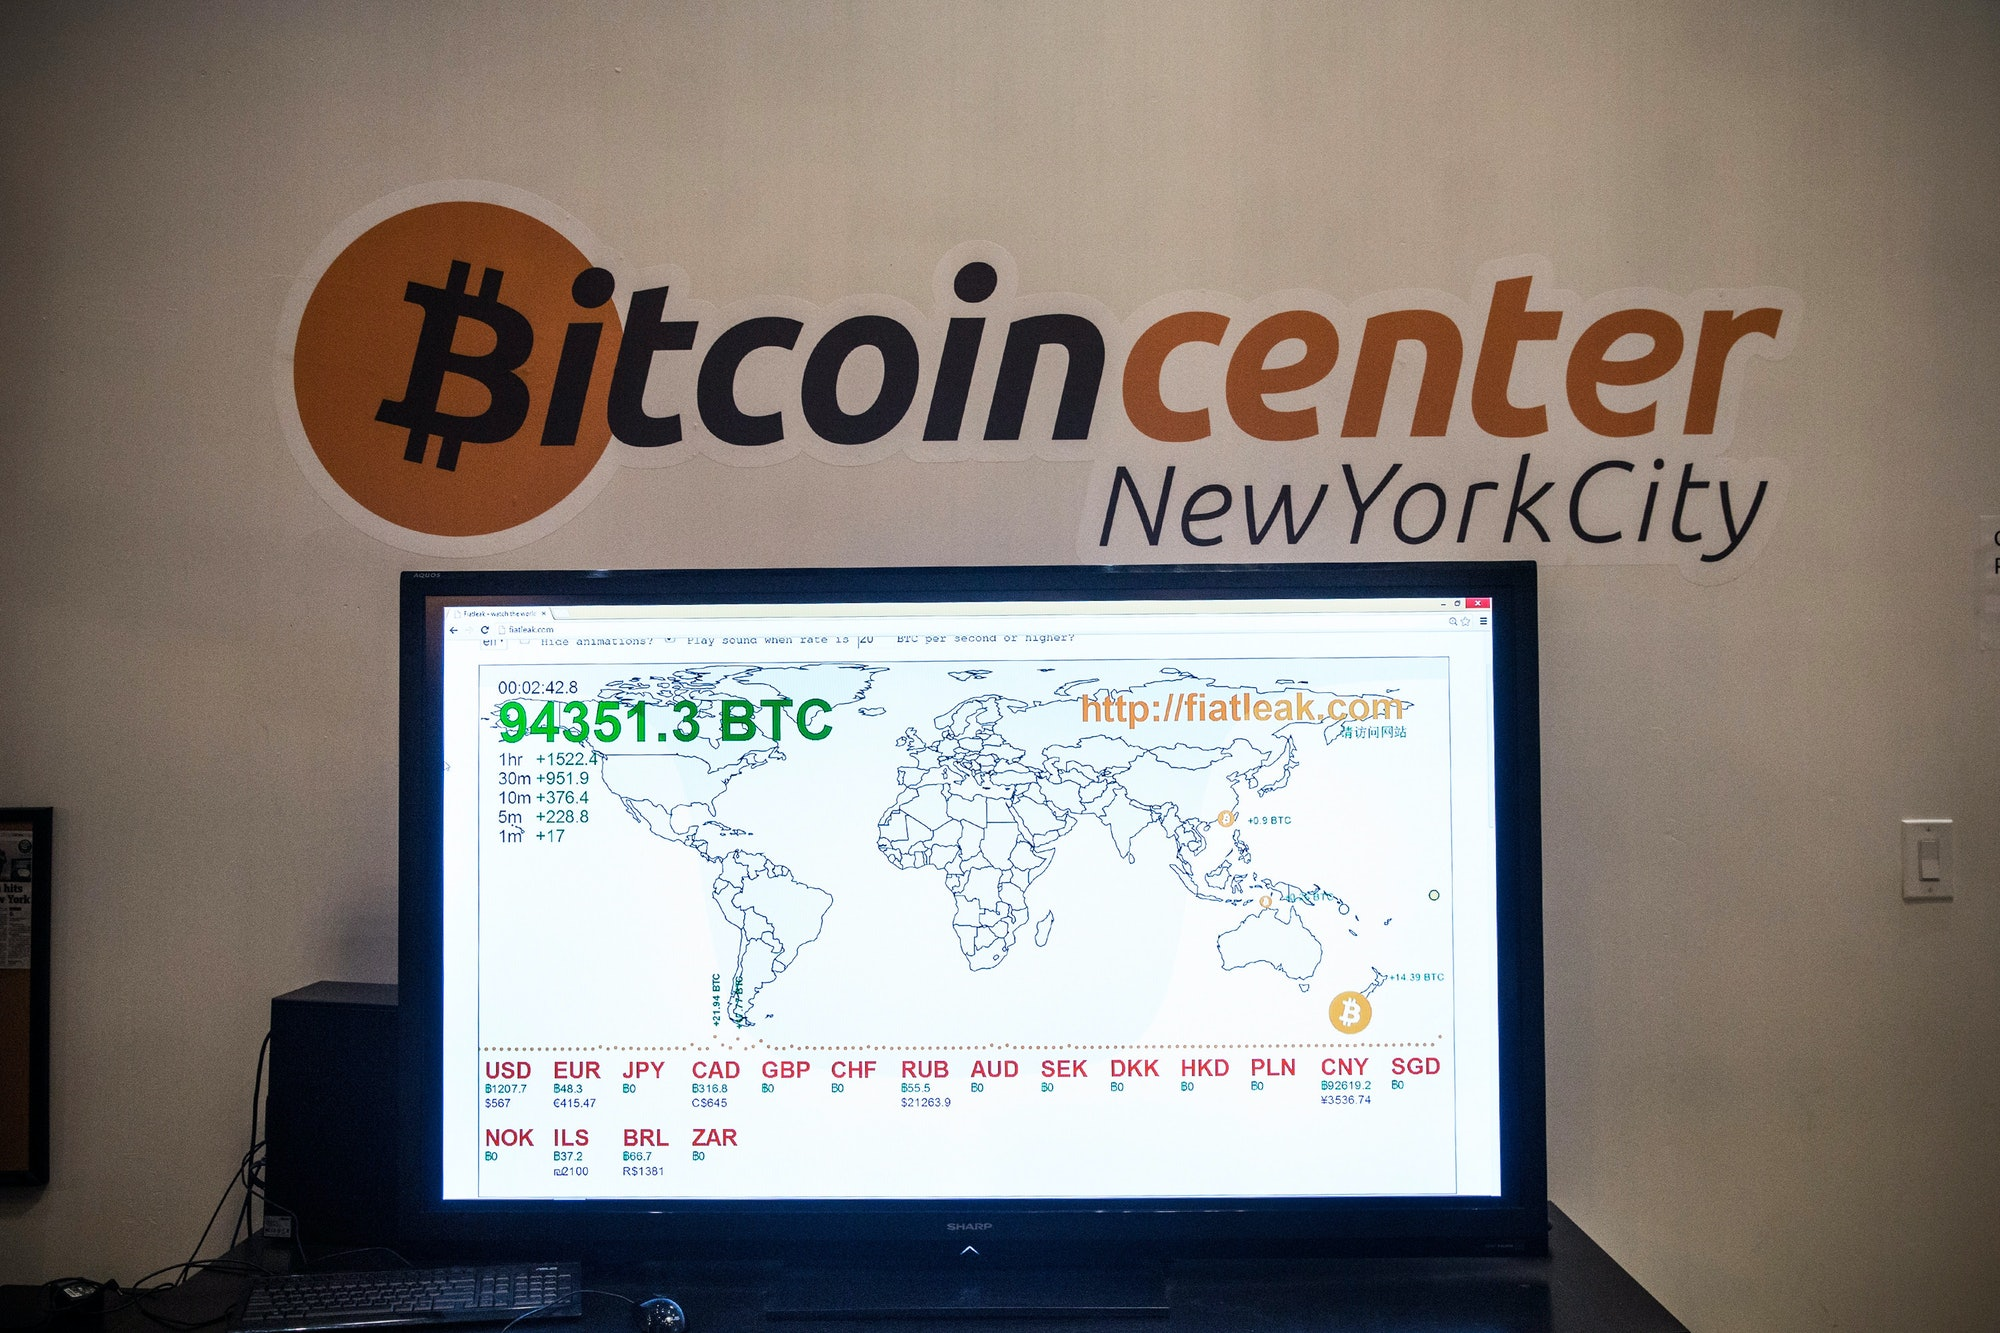 NEW YORK, NY - FEBRUARY 26: A television screen displays variousbitcoinrates at Bitcoin Center NYC during a class on the basics of Bitcoin and how to trade the digital currency on February 26,2014in New York City. The recently opened center offers a physical space for people to trade digital currencies, including bitcoin. Bitcoin Center NYC also offers classes for people interested in learning about digital currencies. (Photo by Andrew Burton/Getty Images)